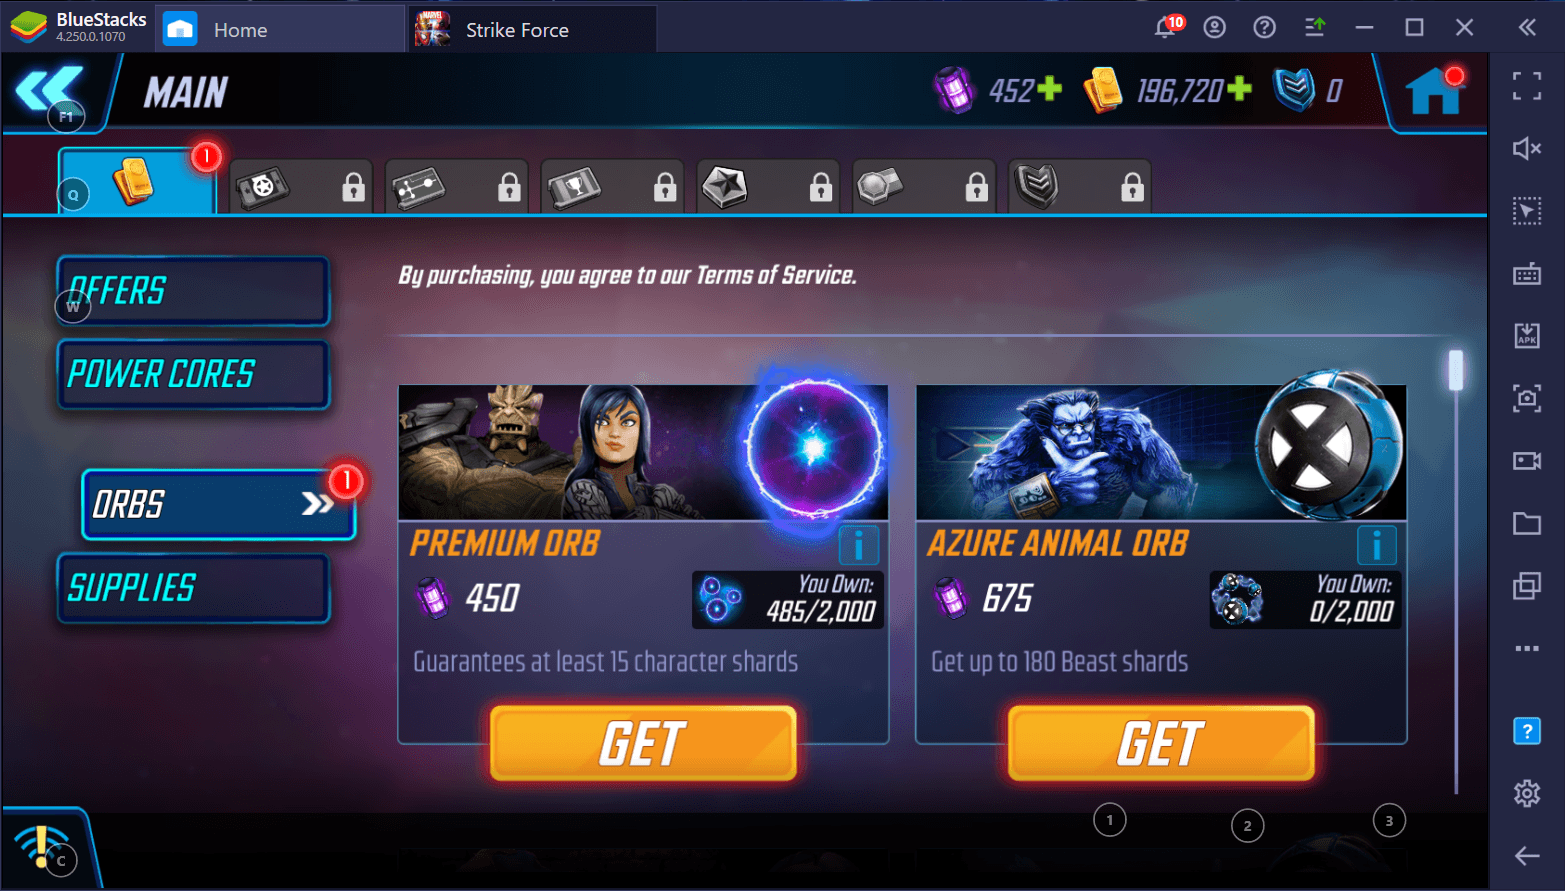 Managing Orbs: The BlueStacks Guide to Orb Management in MARVEL Strike Force